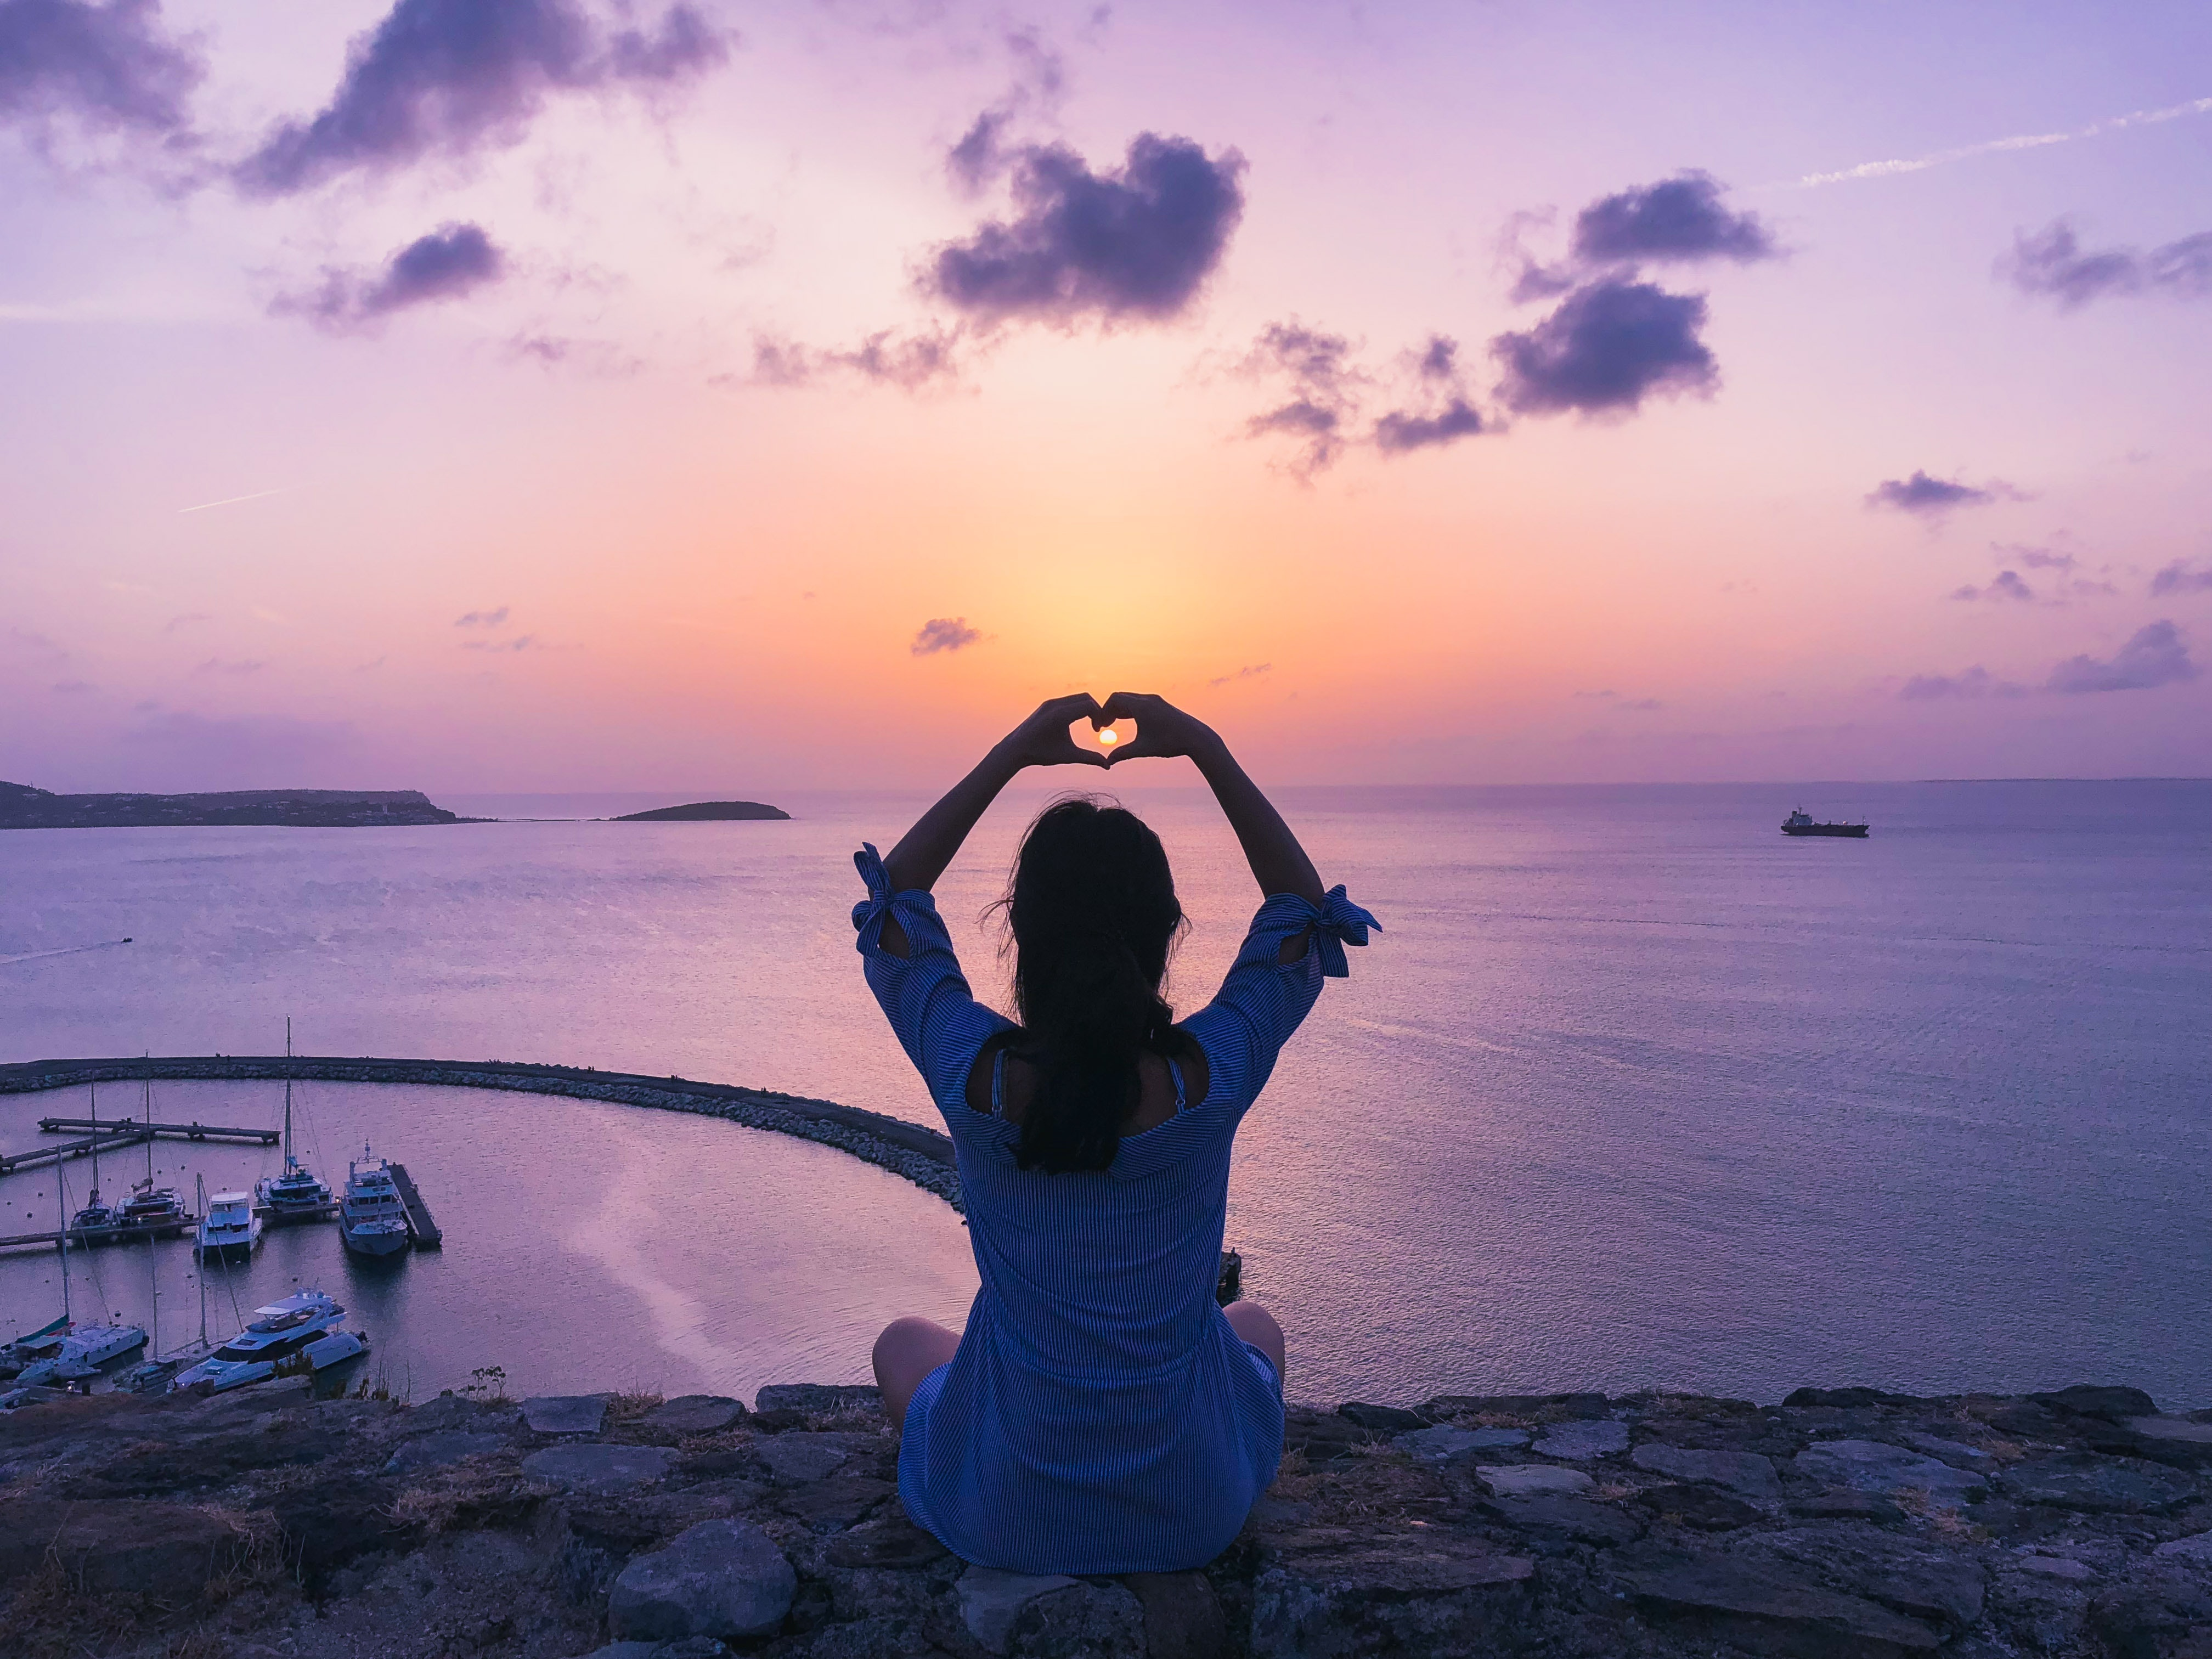 woman-sitting-on-rock-doing-heart-hand-gesture-1399034